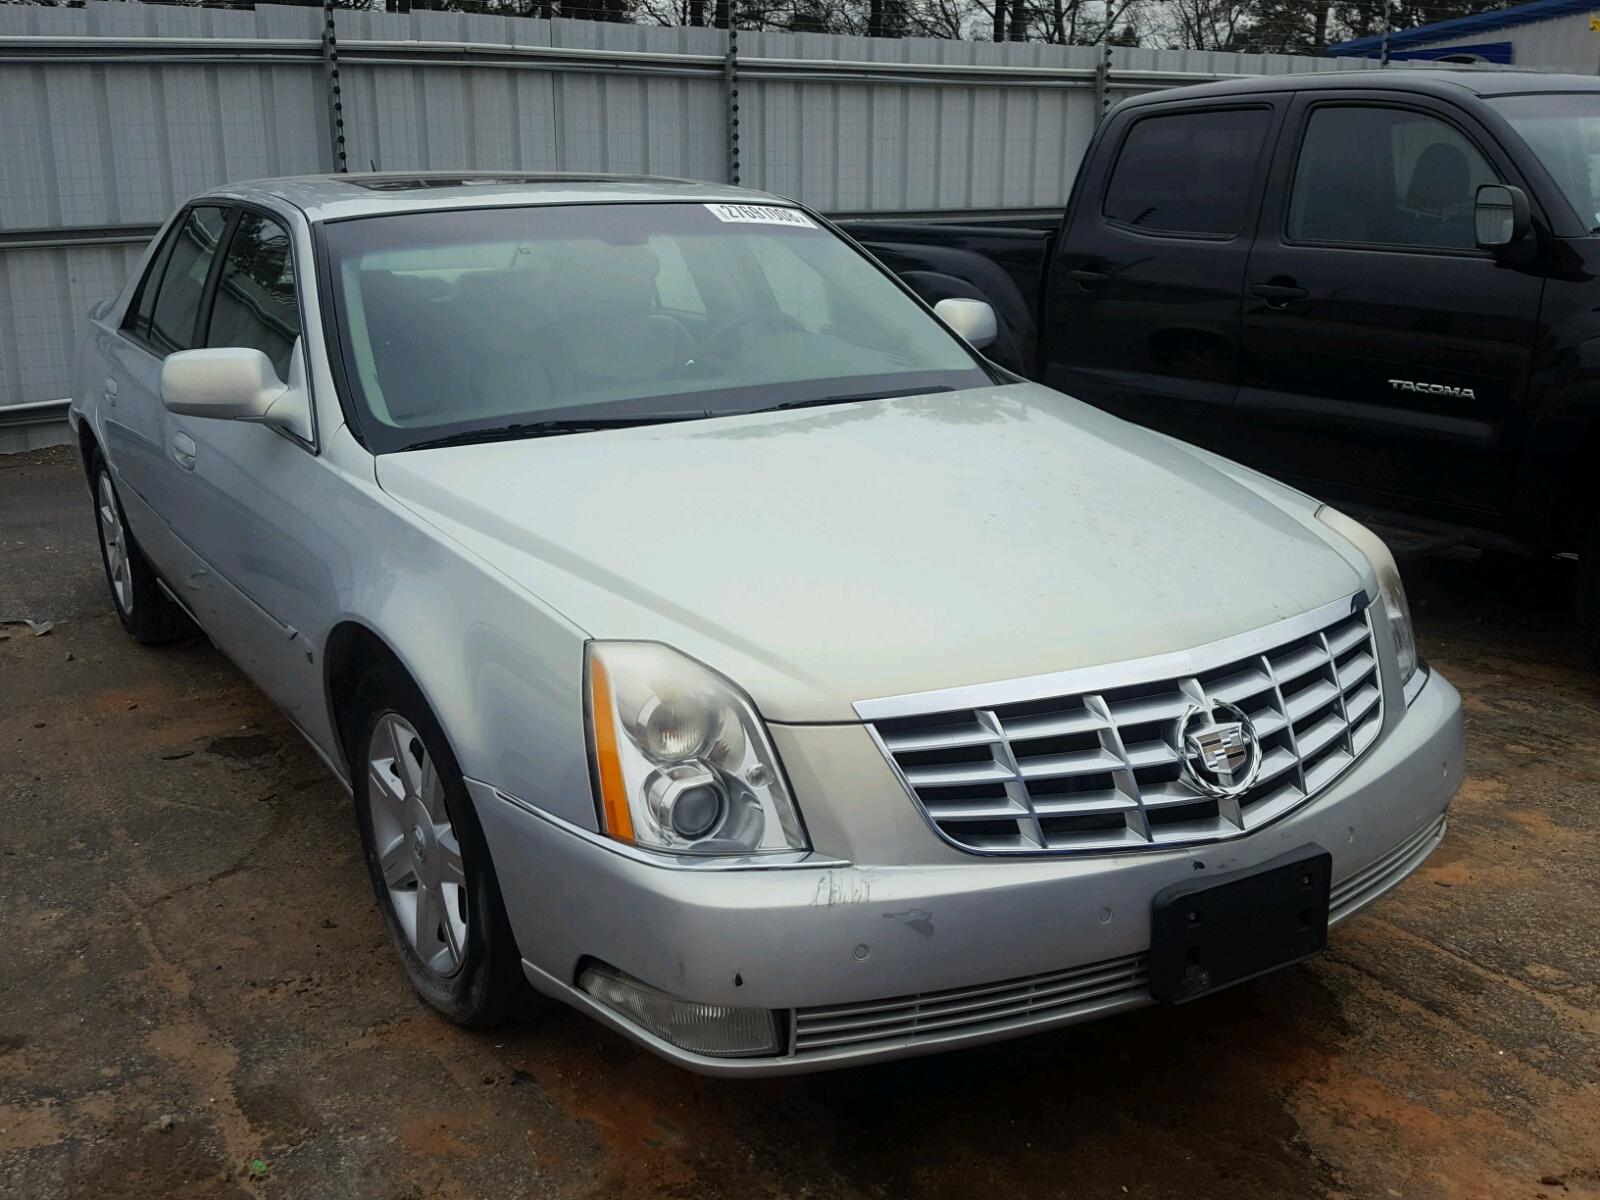 dts center control cts new itm deville exact inch inventory seville sts choice spec chrome wheels note cadillac oem cap